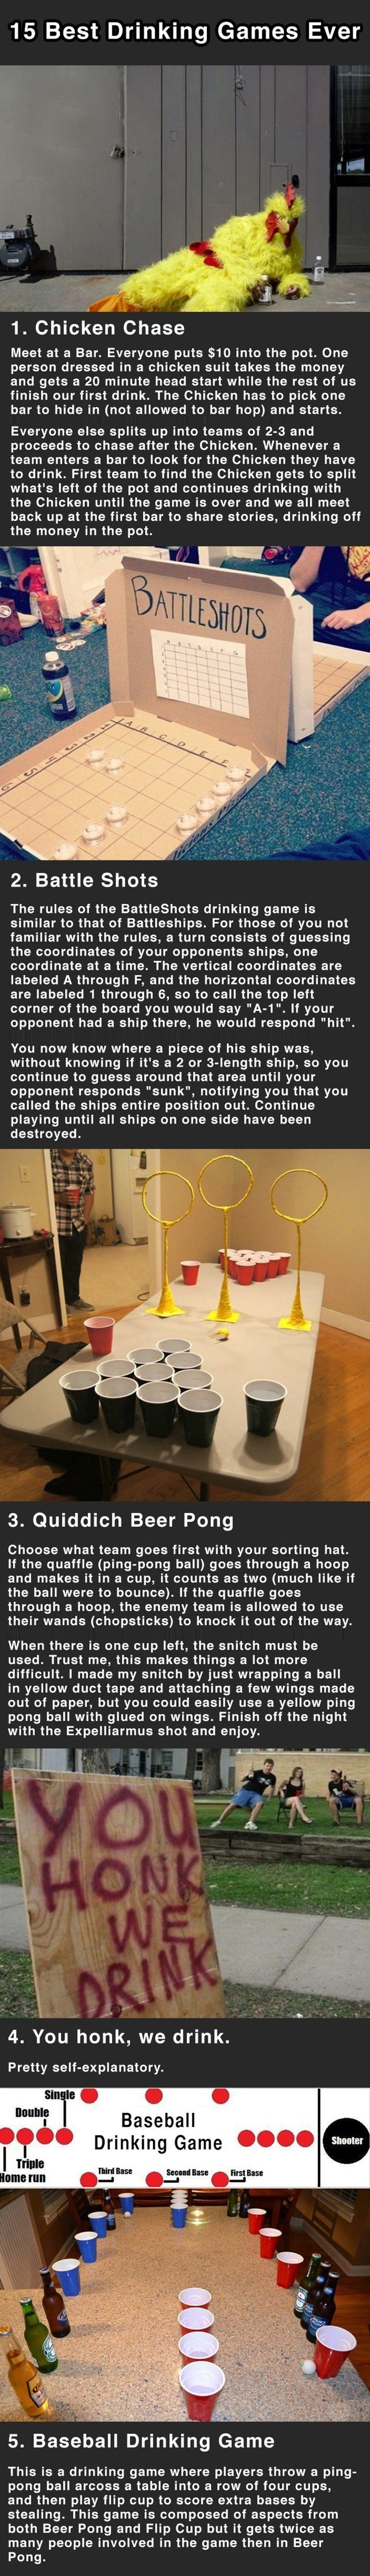 Best drinking games for 2